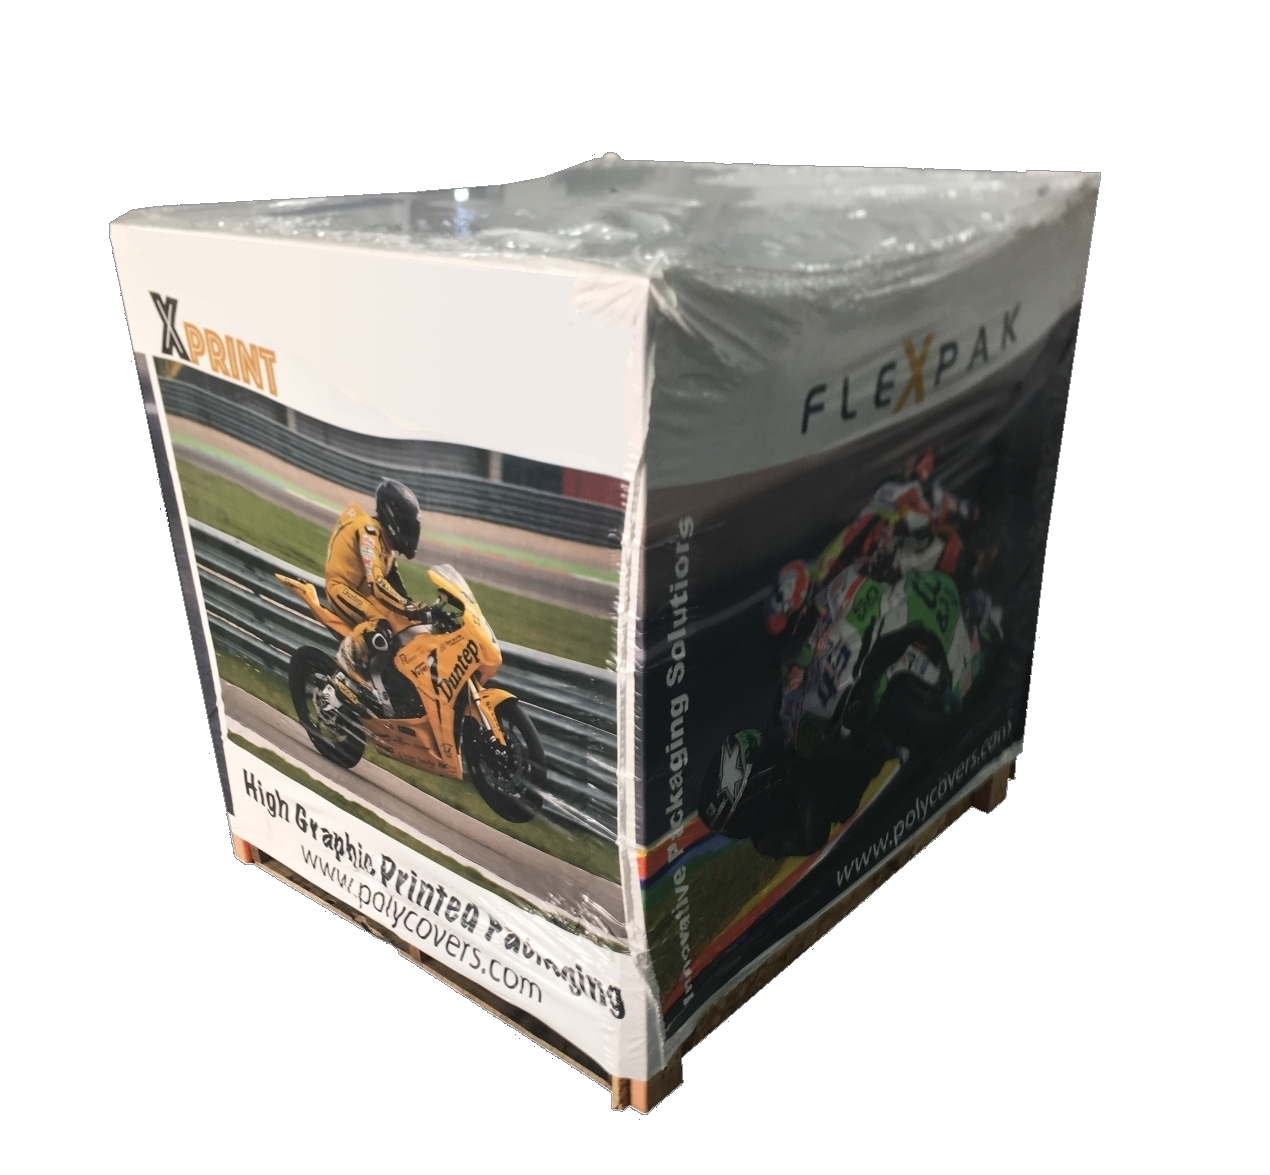 Shrink Cover Crate Packaging.jpg